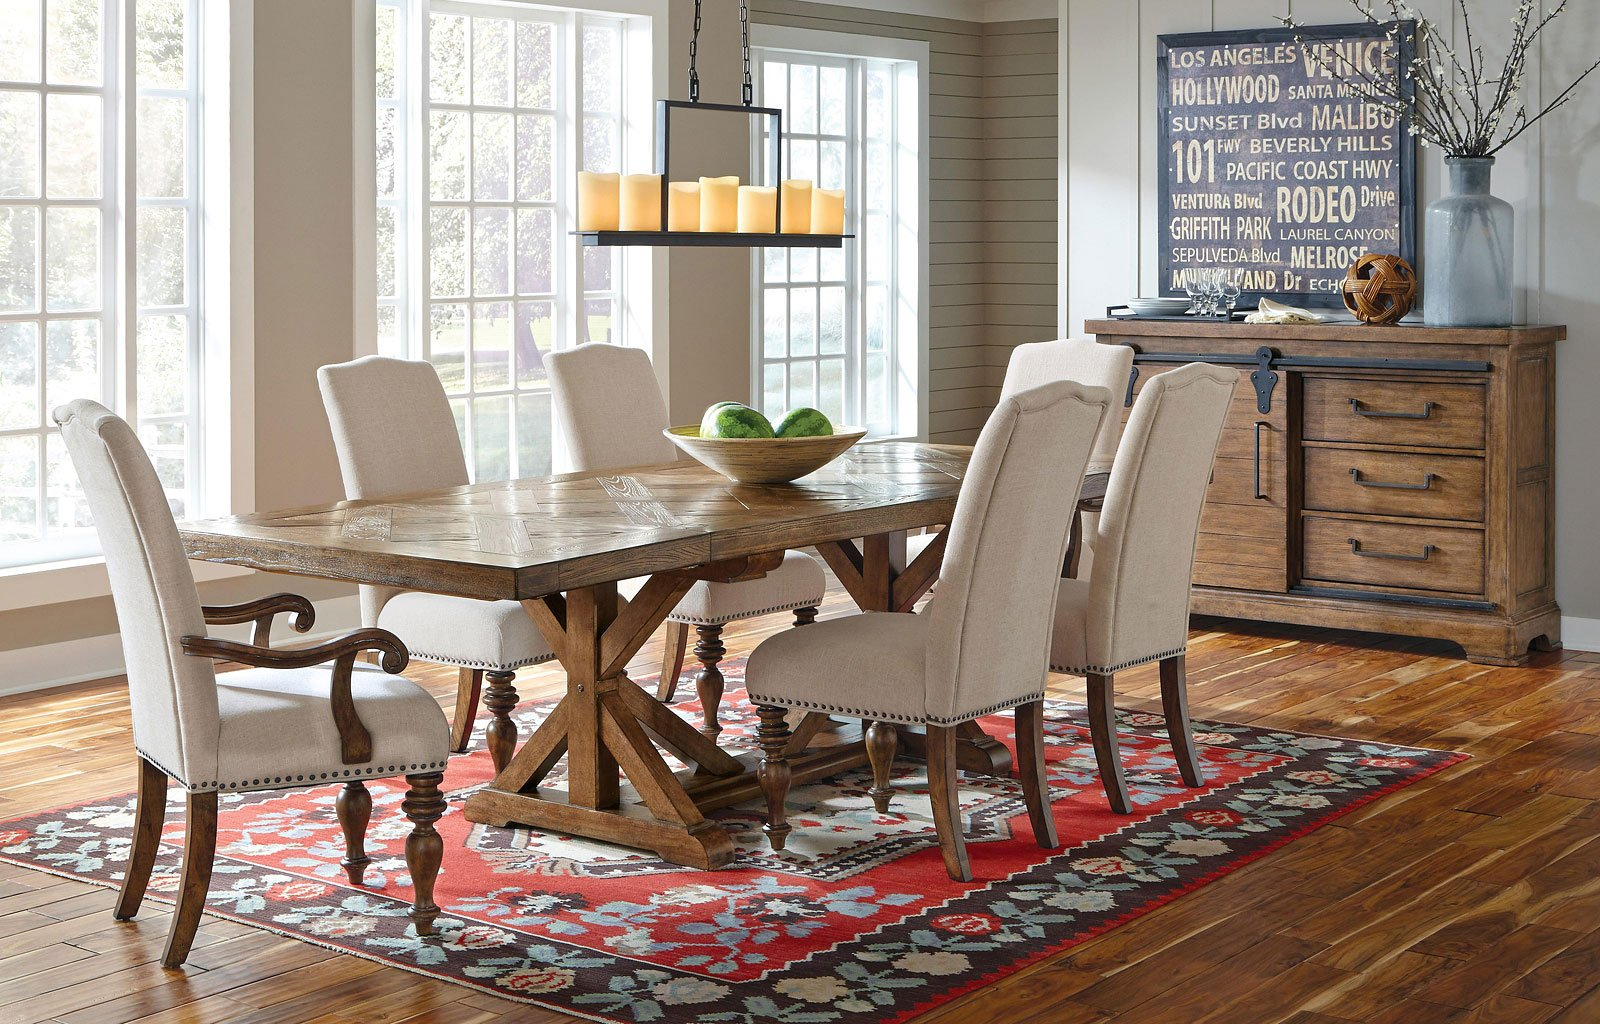 American Attitude X-Pattern Saw Horse Dining Set w/ Upholstered Chairs